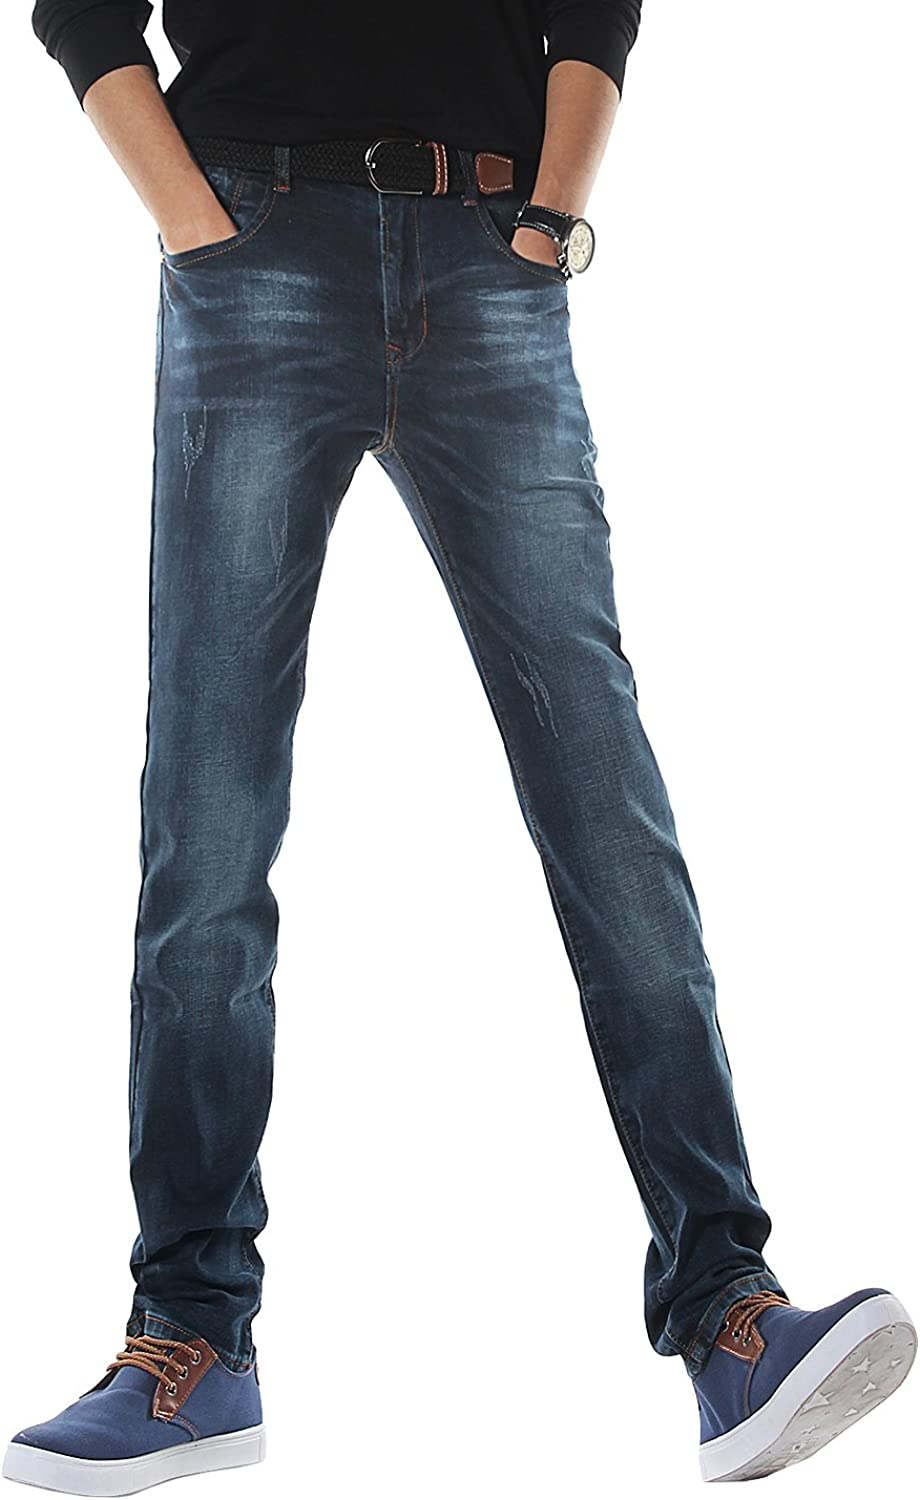 Purchase DemonHunter Men's Slim Fit Jeans Stretch S30S3 Max 63% OFF